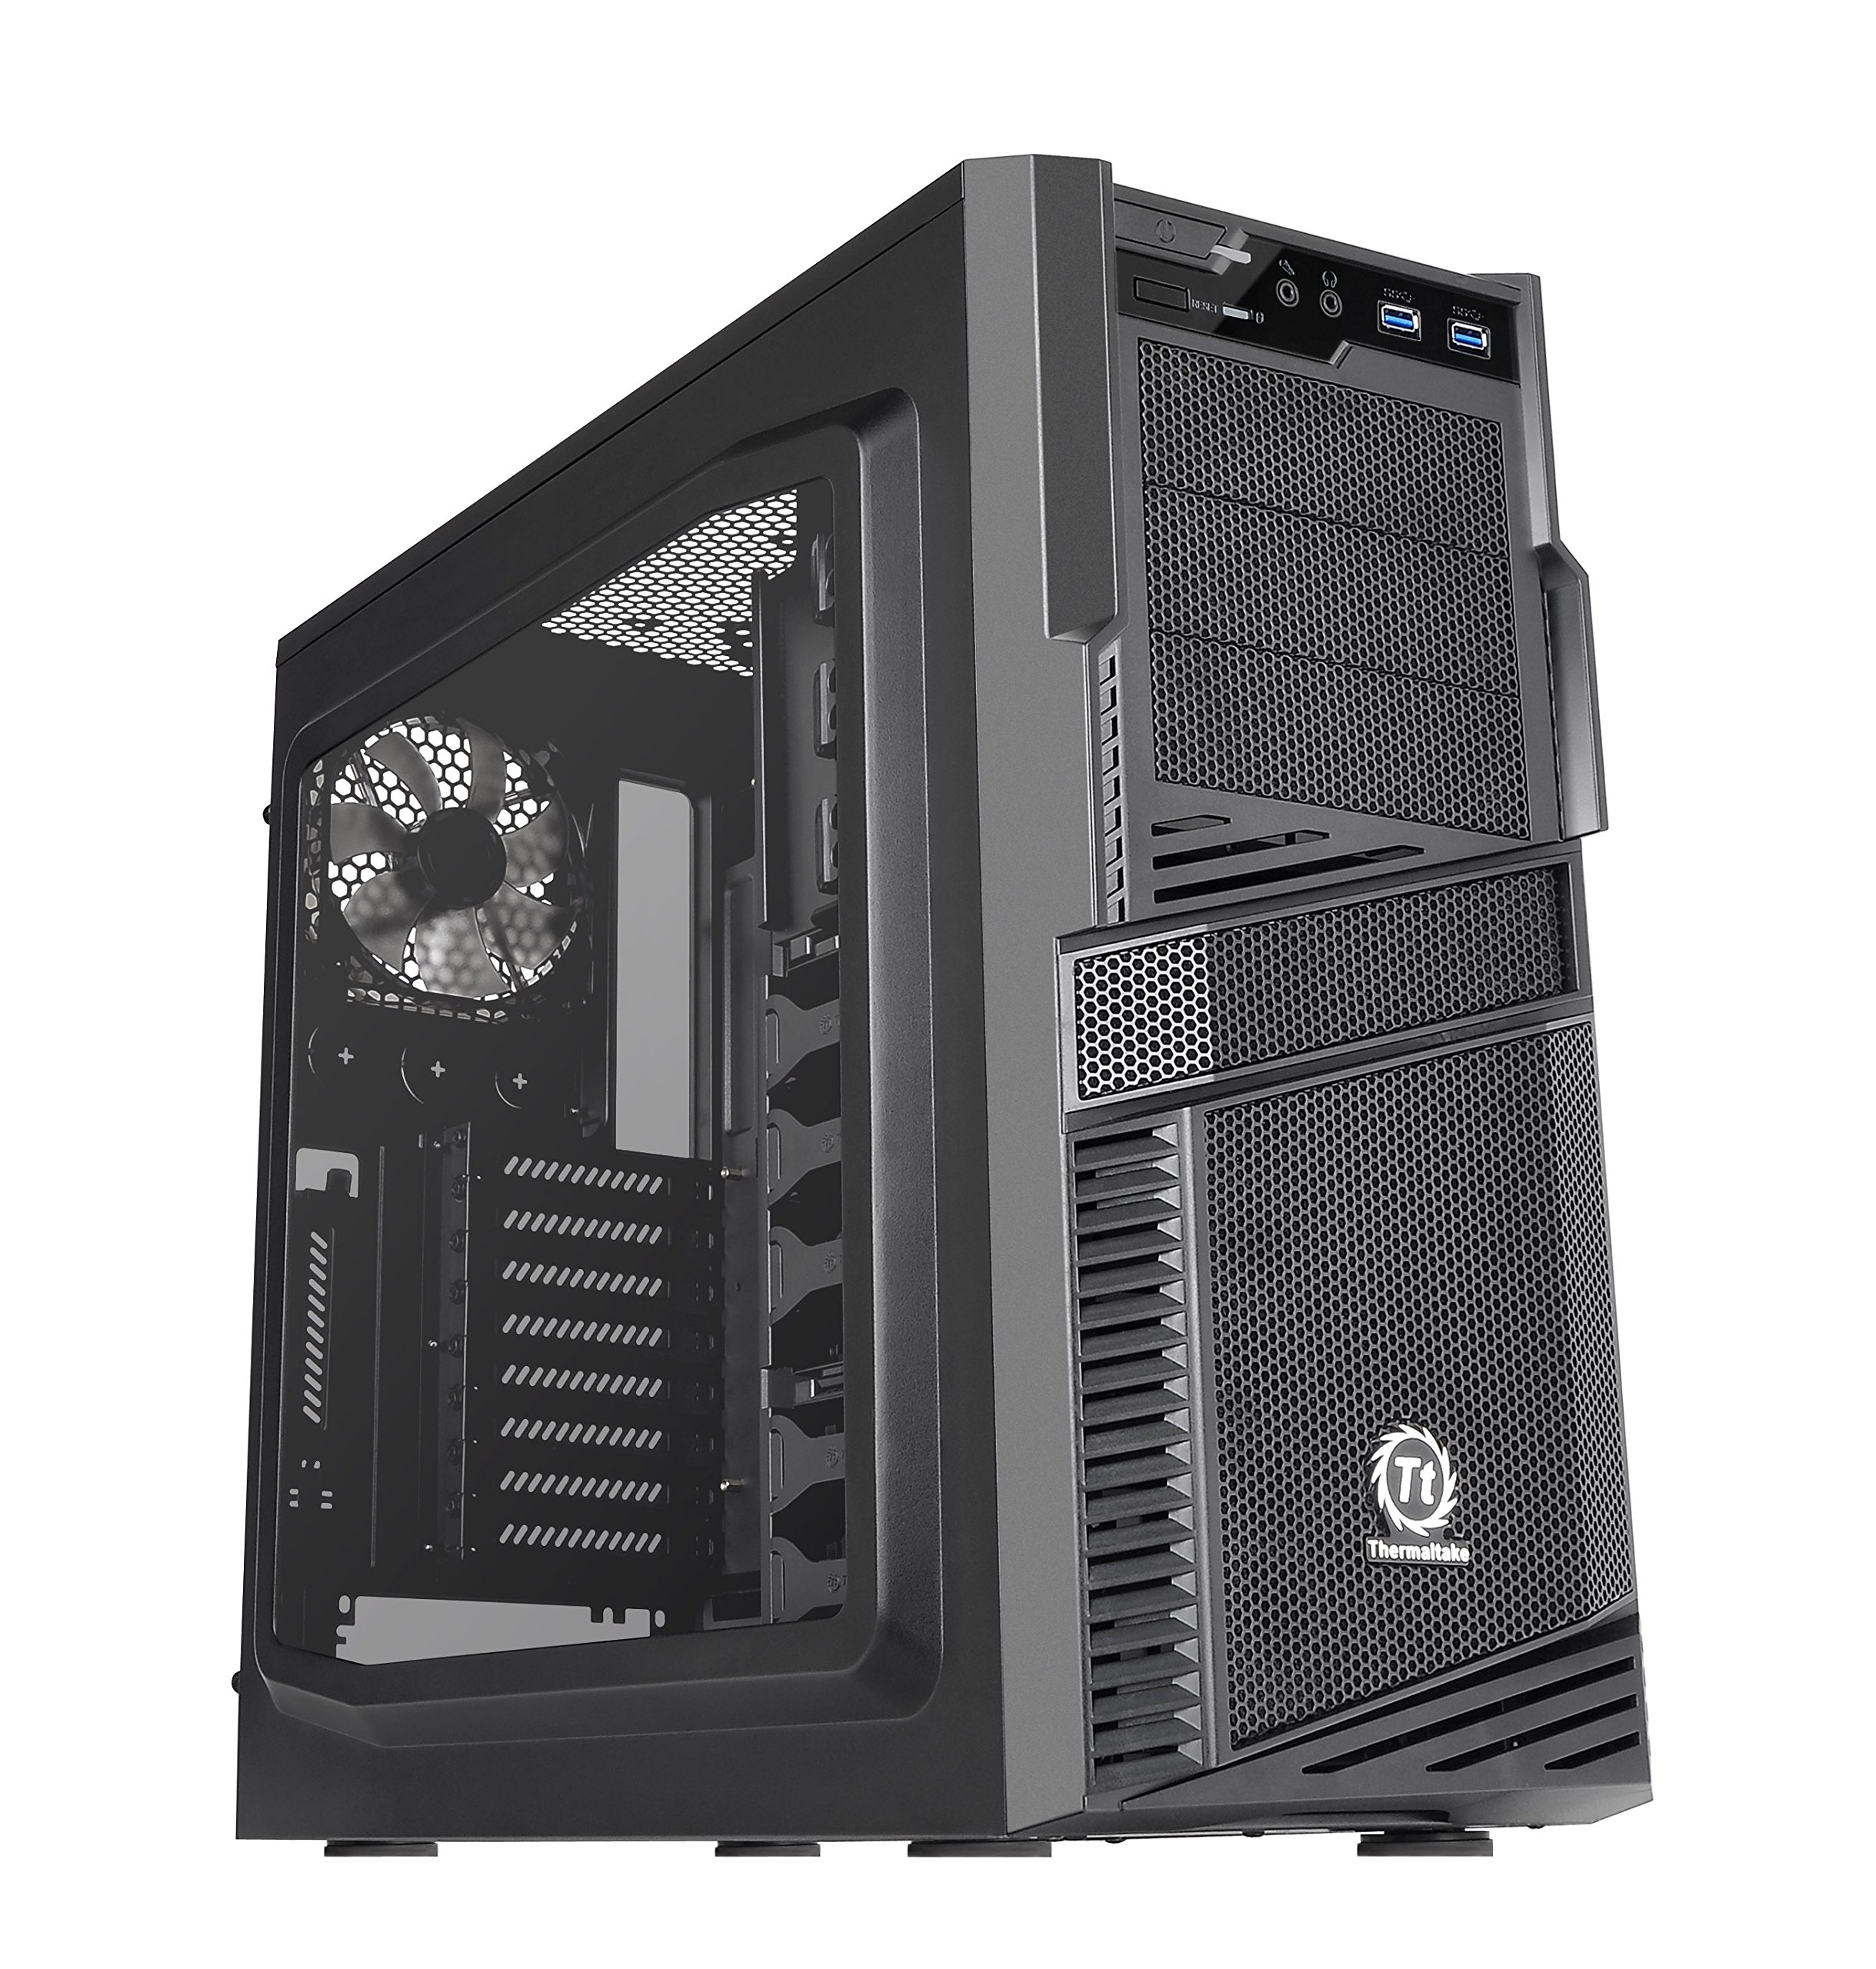 Thermaltake Commander G42 Window  SPCC ATX Mid Tower Computer Chassis CA-1B5-00M1WN-00 by Thermaltake